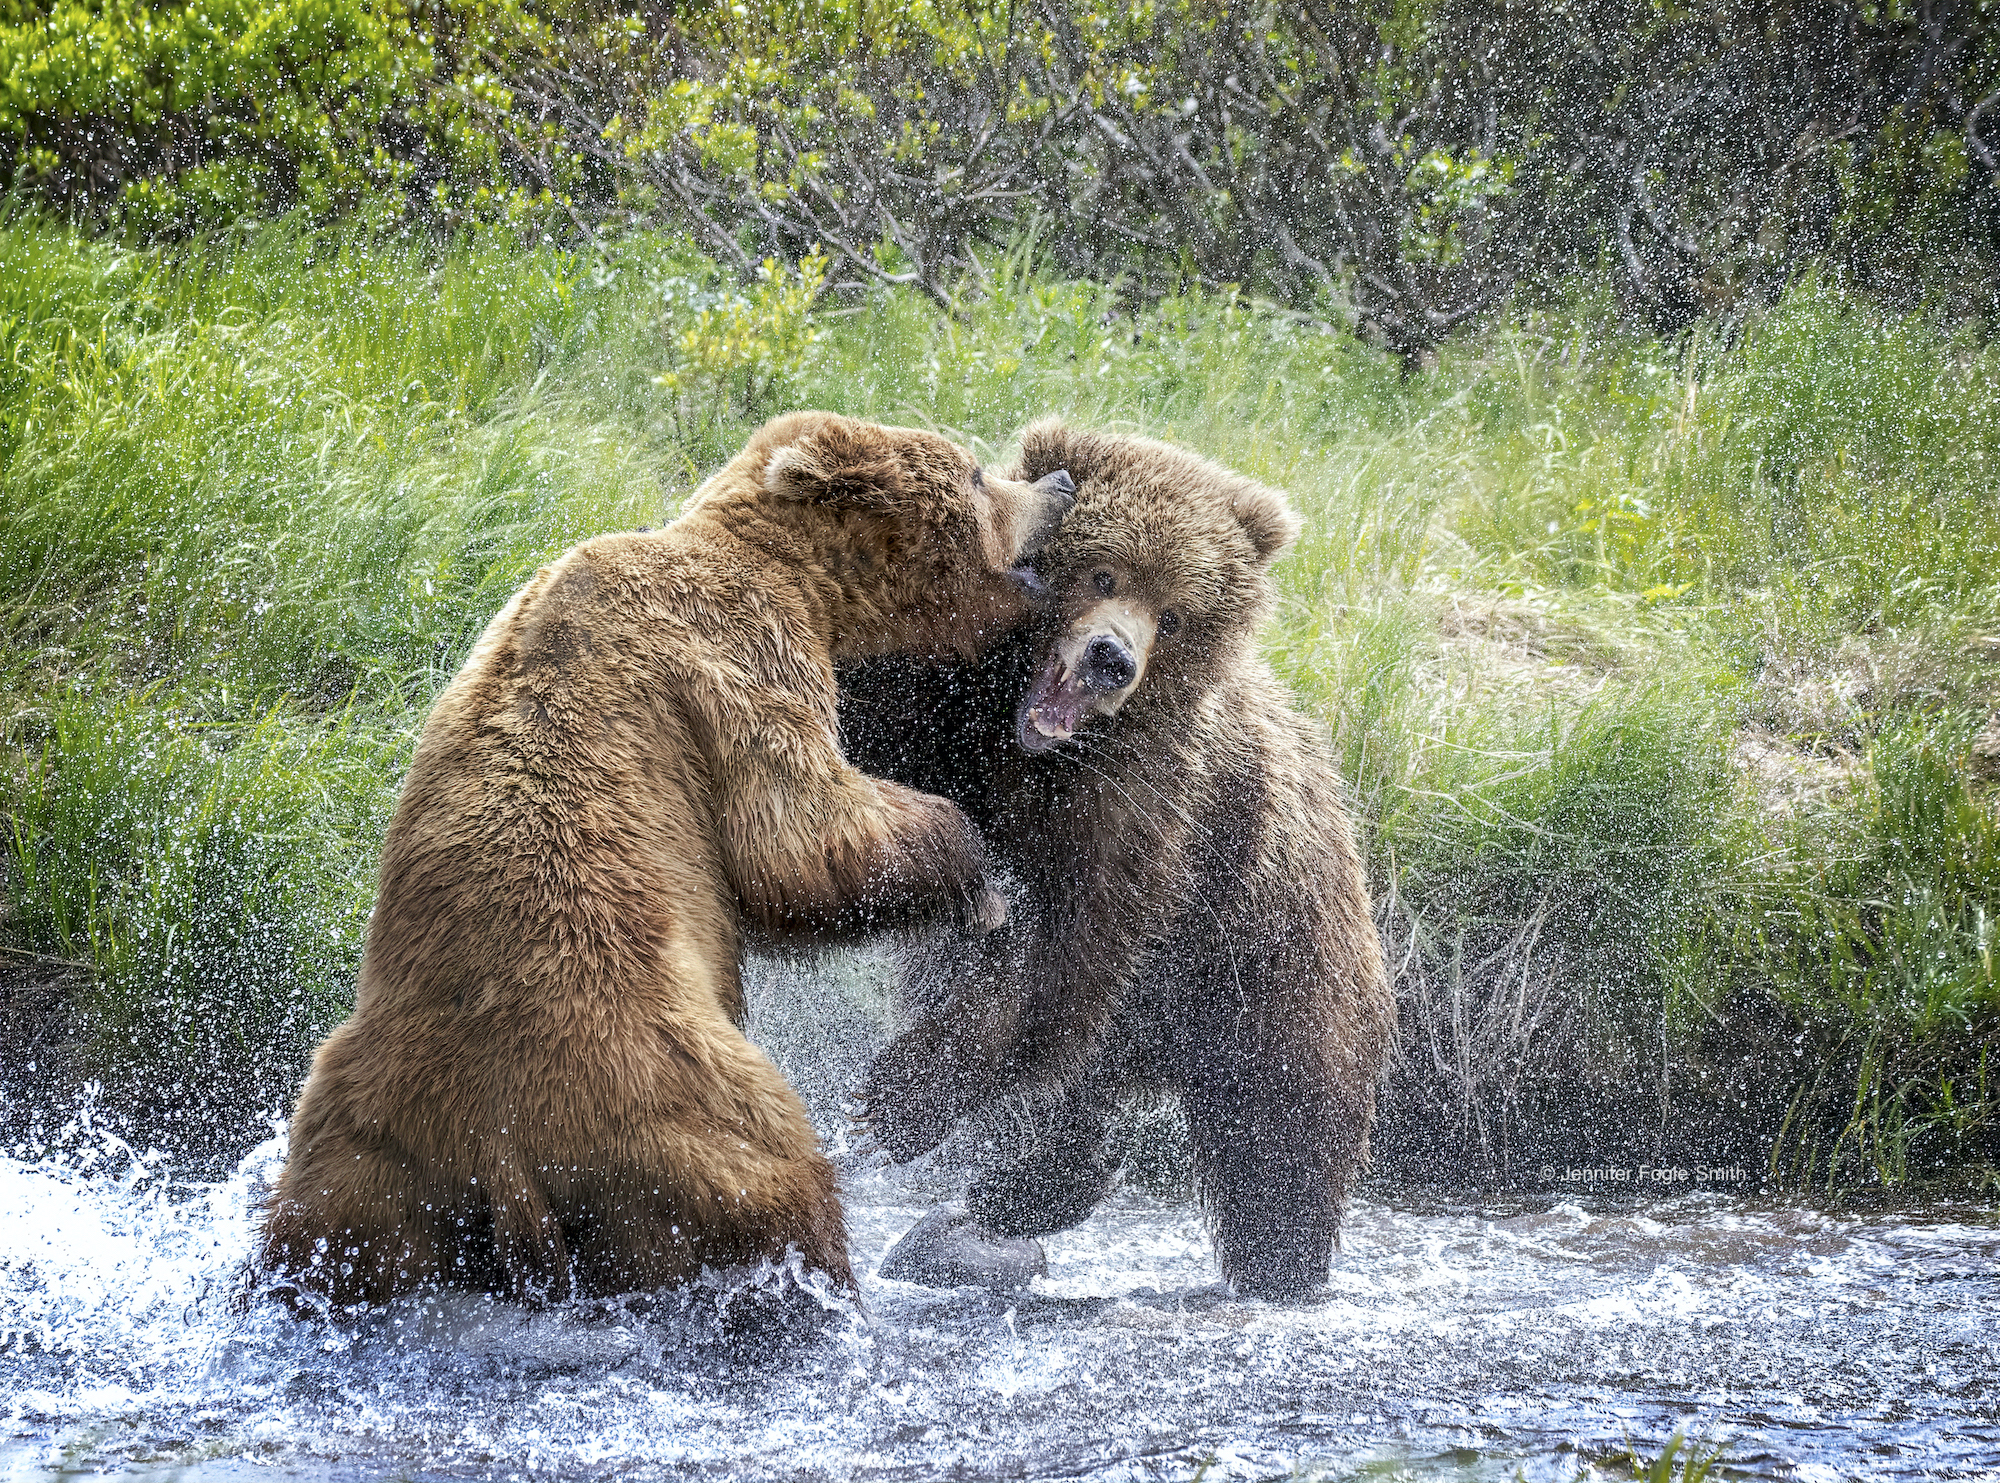 Two brown bears fighting in water, image by Jennifer Fogle Smith